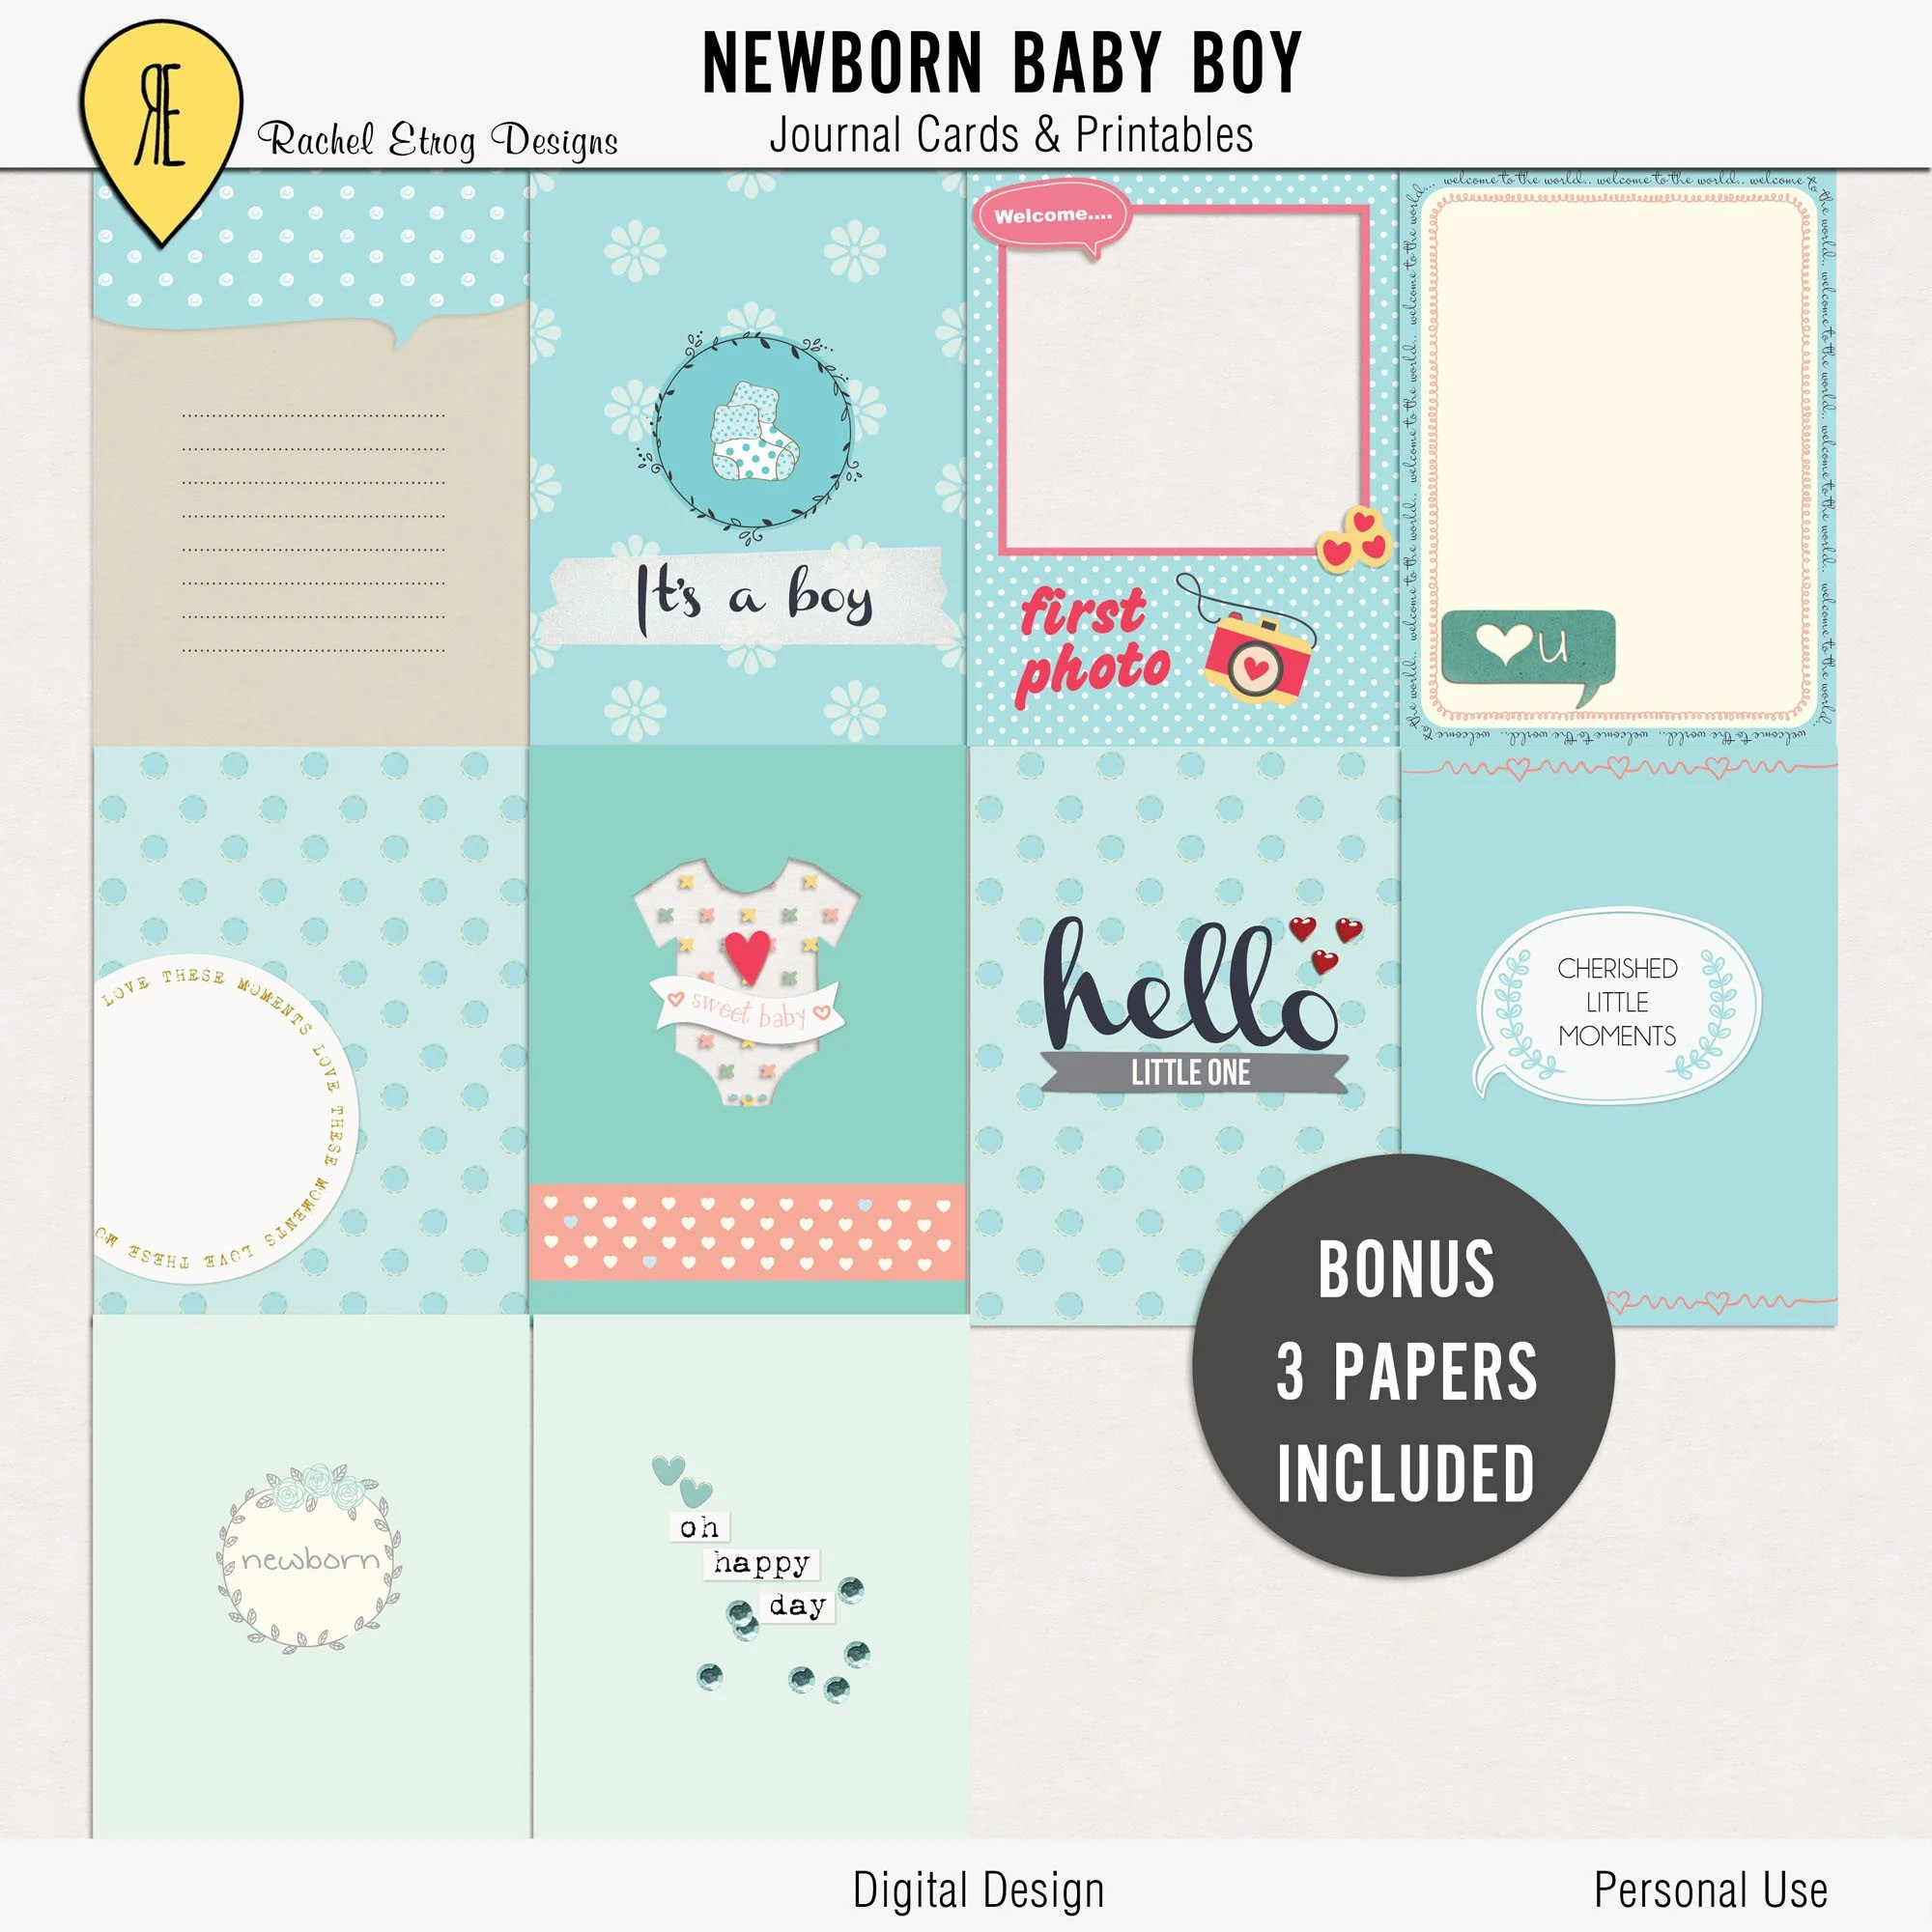 Newborn baby boy Journal Cards Instant Download Printable Etsy